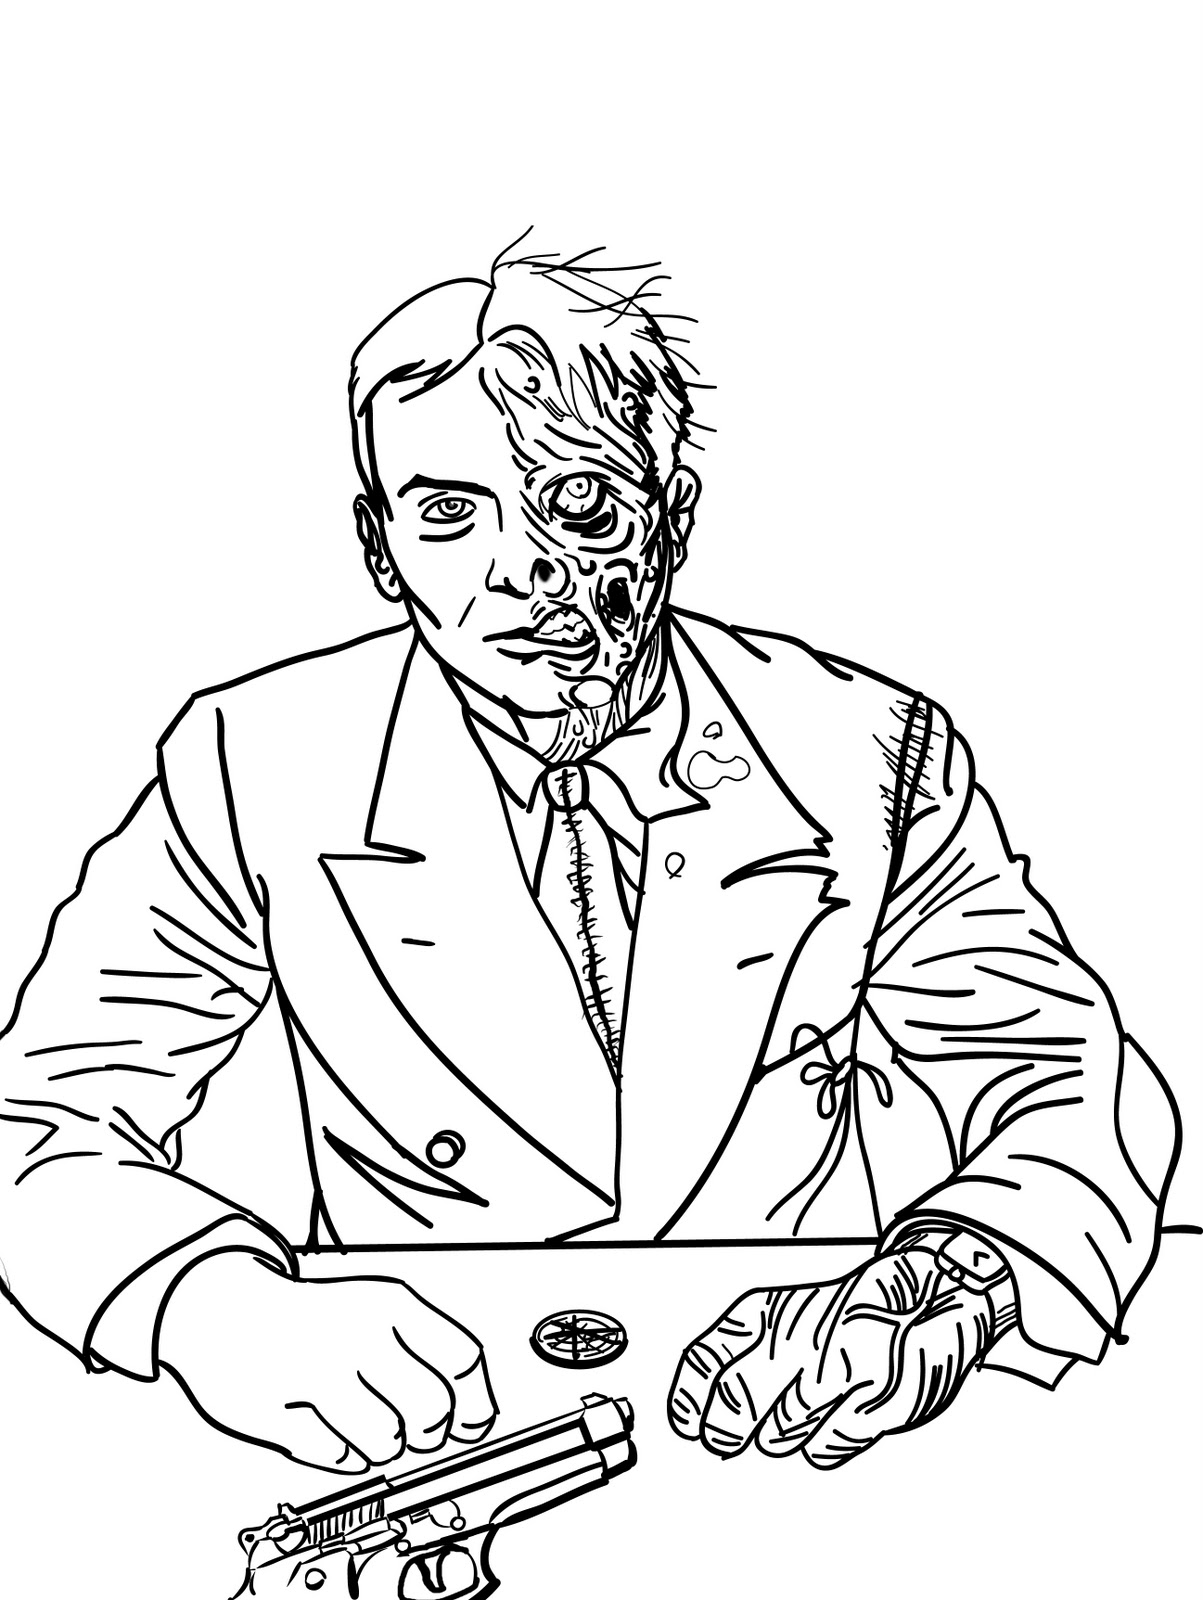 Adult Beauty Two Face Coloring Pages Gallery Images top toekneearrows harvey dent tuesday january 3 2012 images